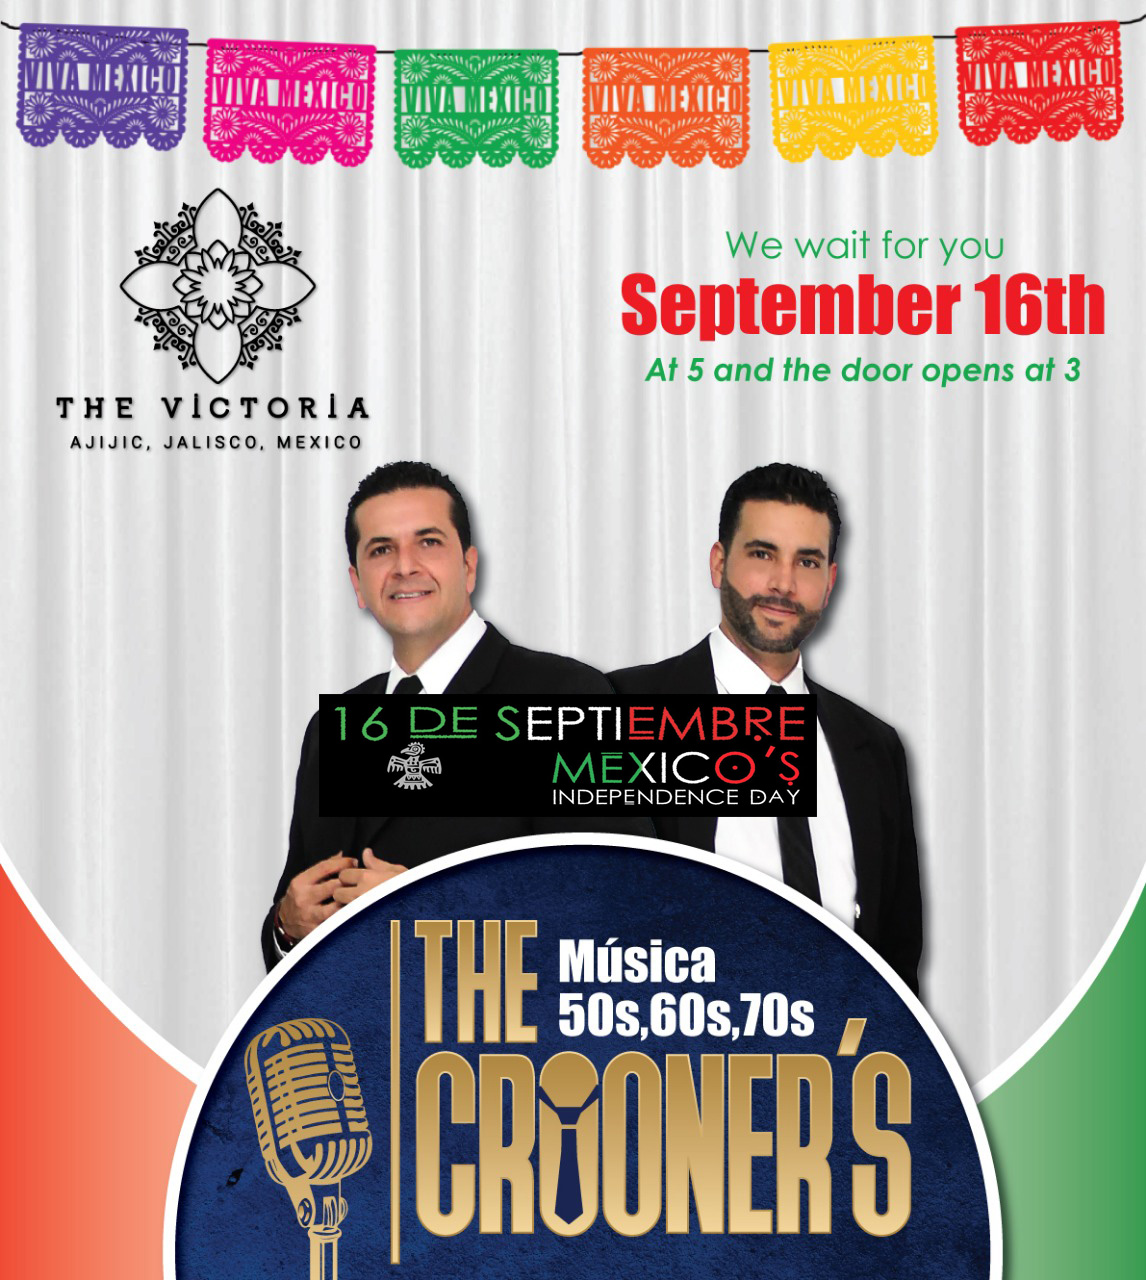 Celebrate Mexican Independence Day With The Crooners